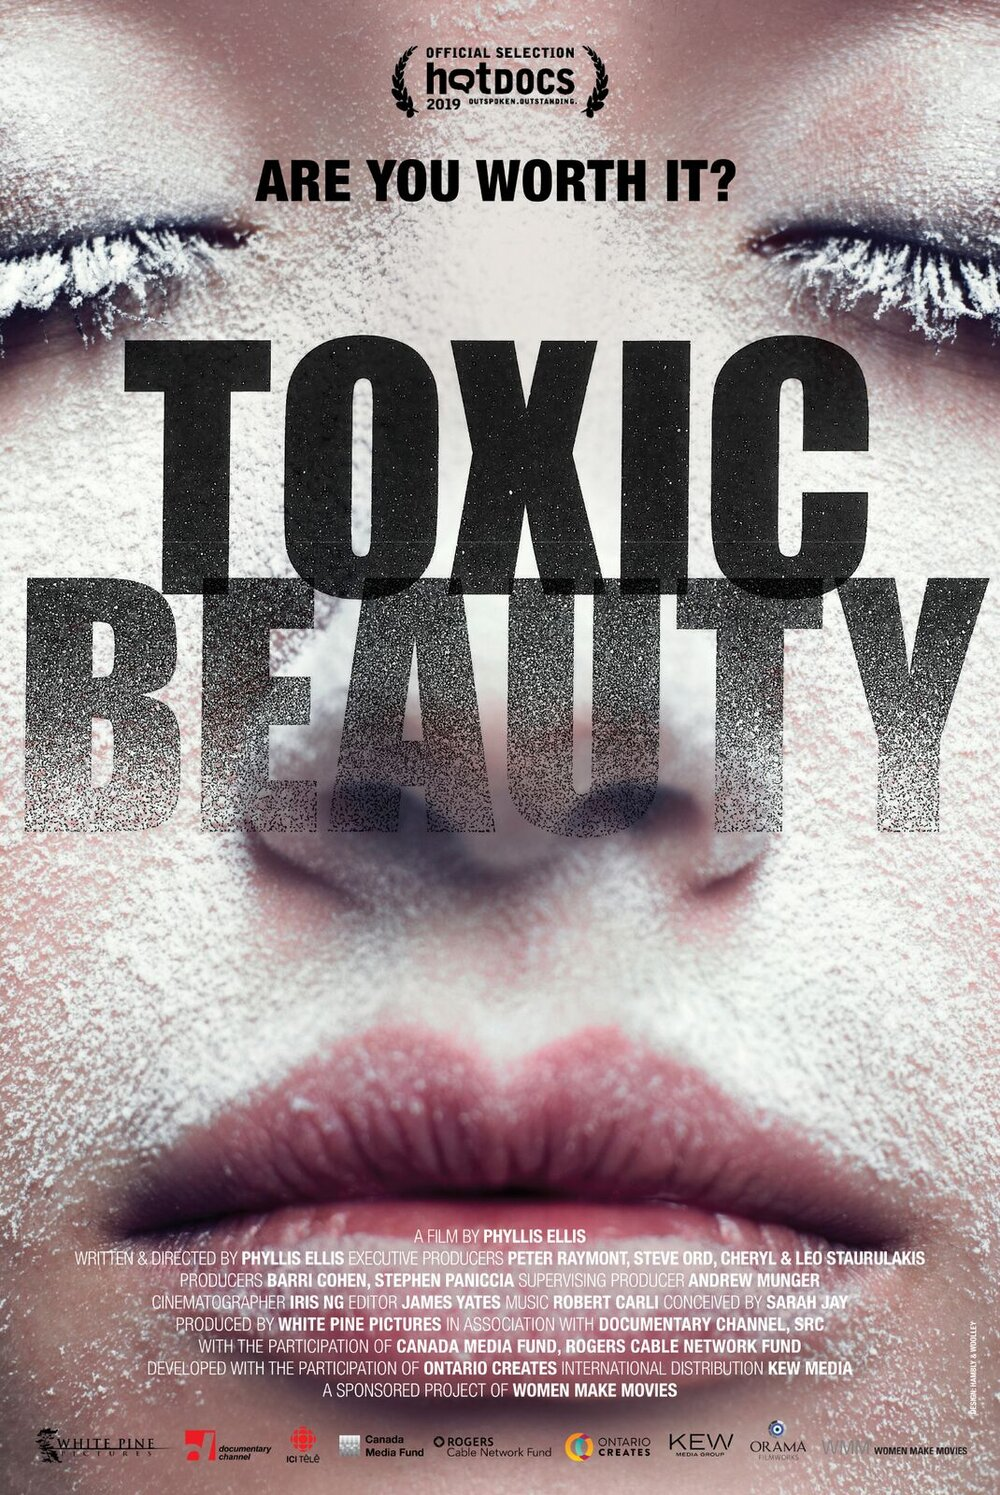 Toxic Beauty (2019): Facing Facts About the Beauty Industry